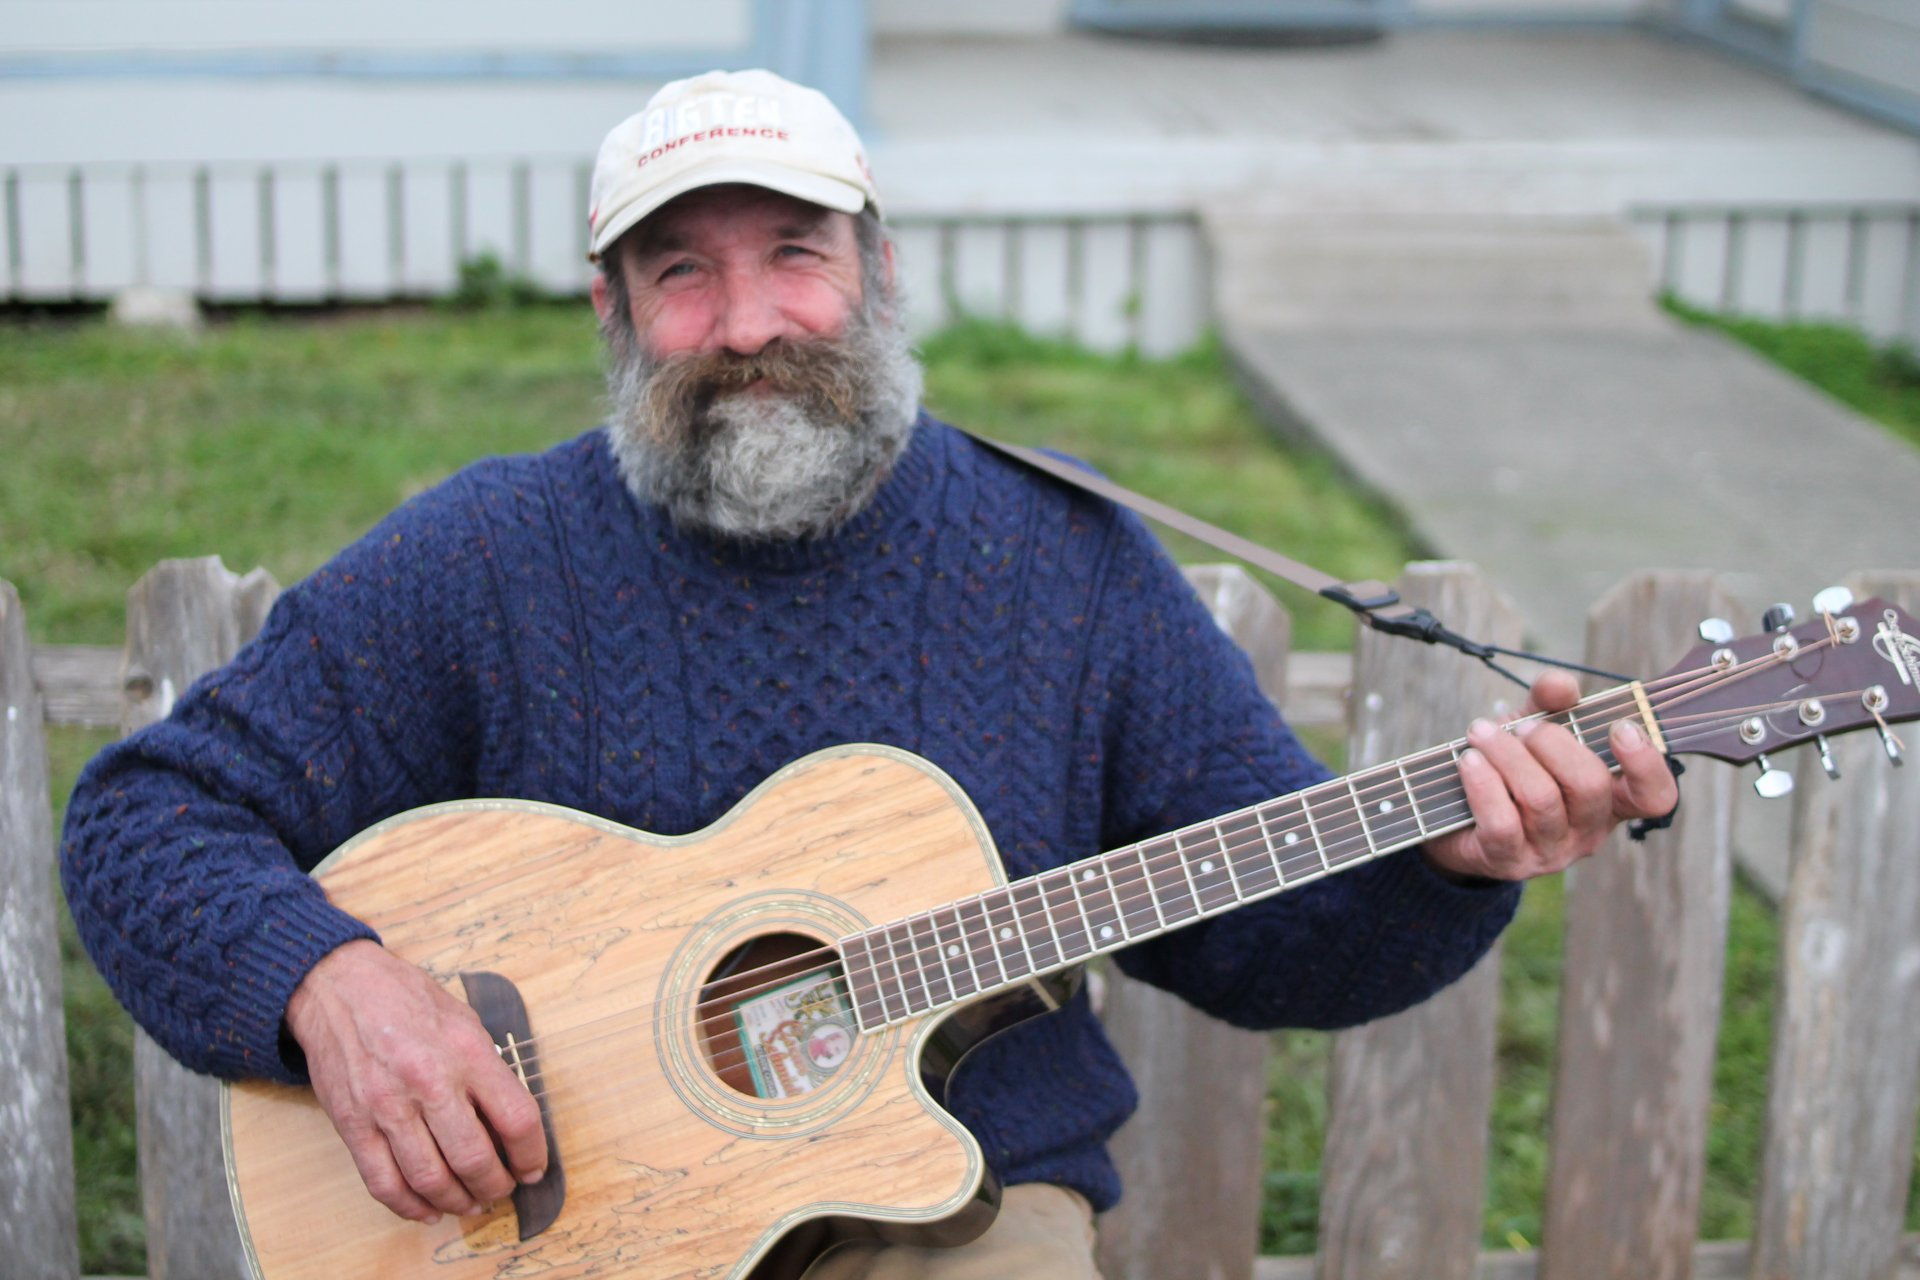 Ricky Smith, who has been homeless the past two years, plays guitar on the streets of Arcata. Photo by: T.William Wallin